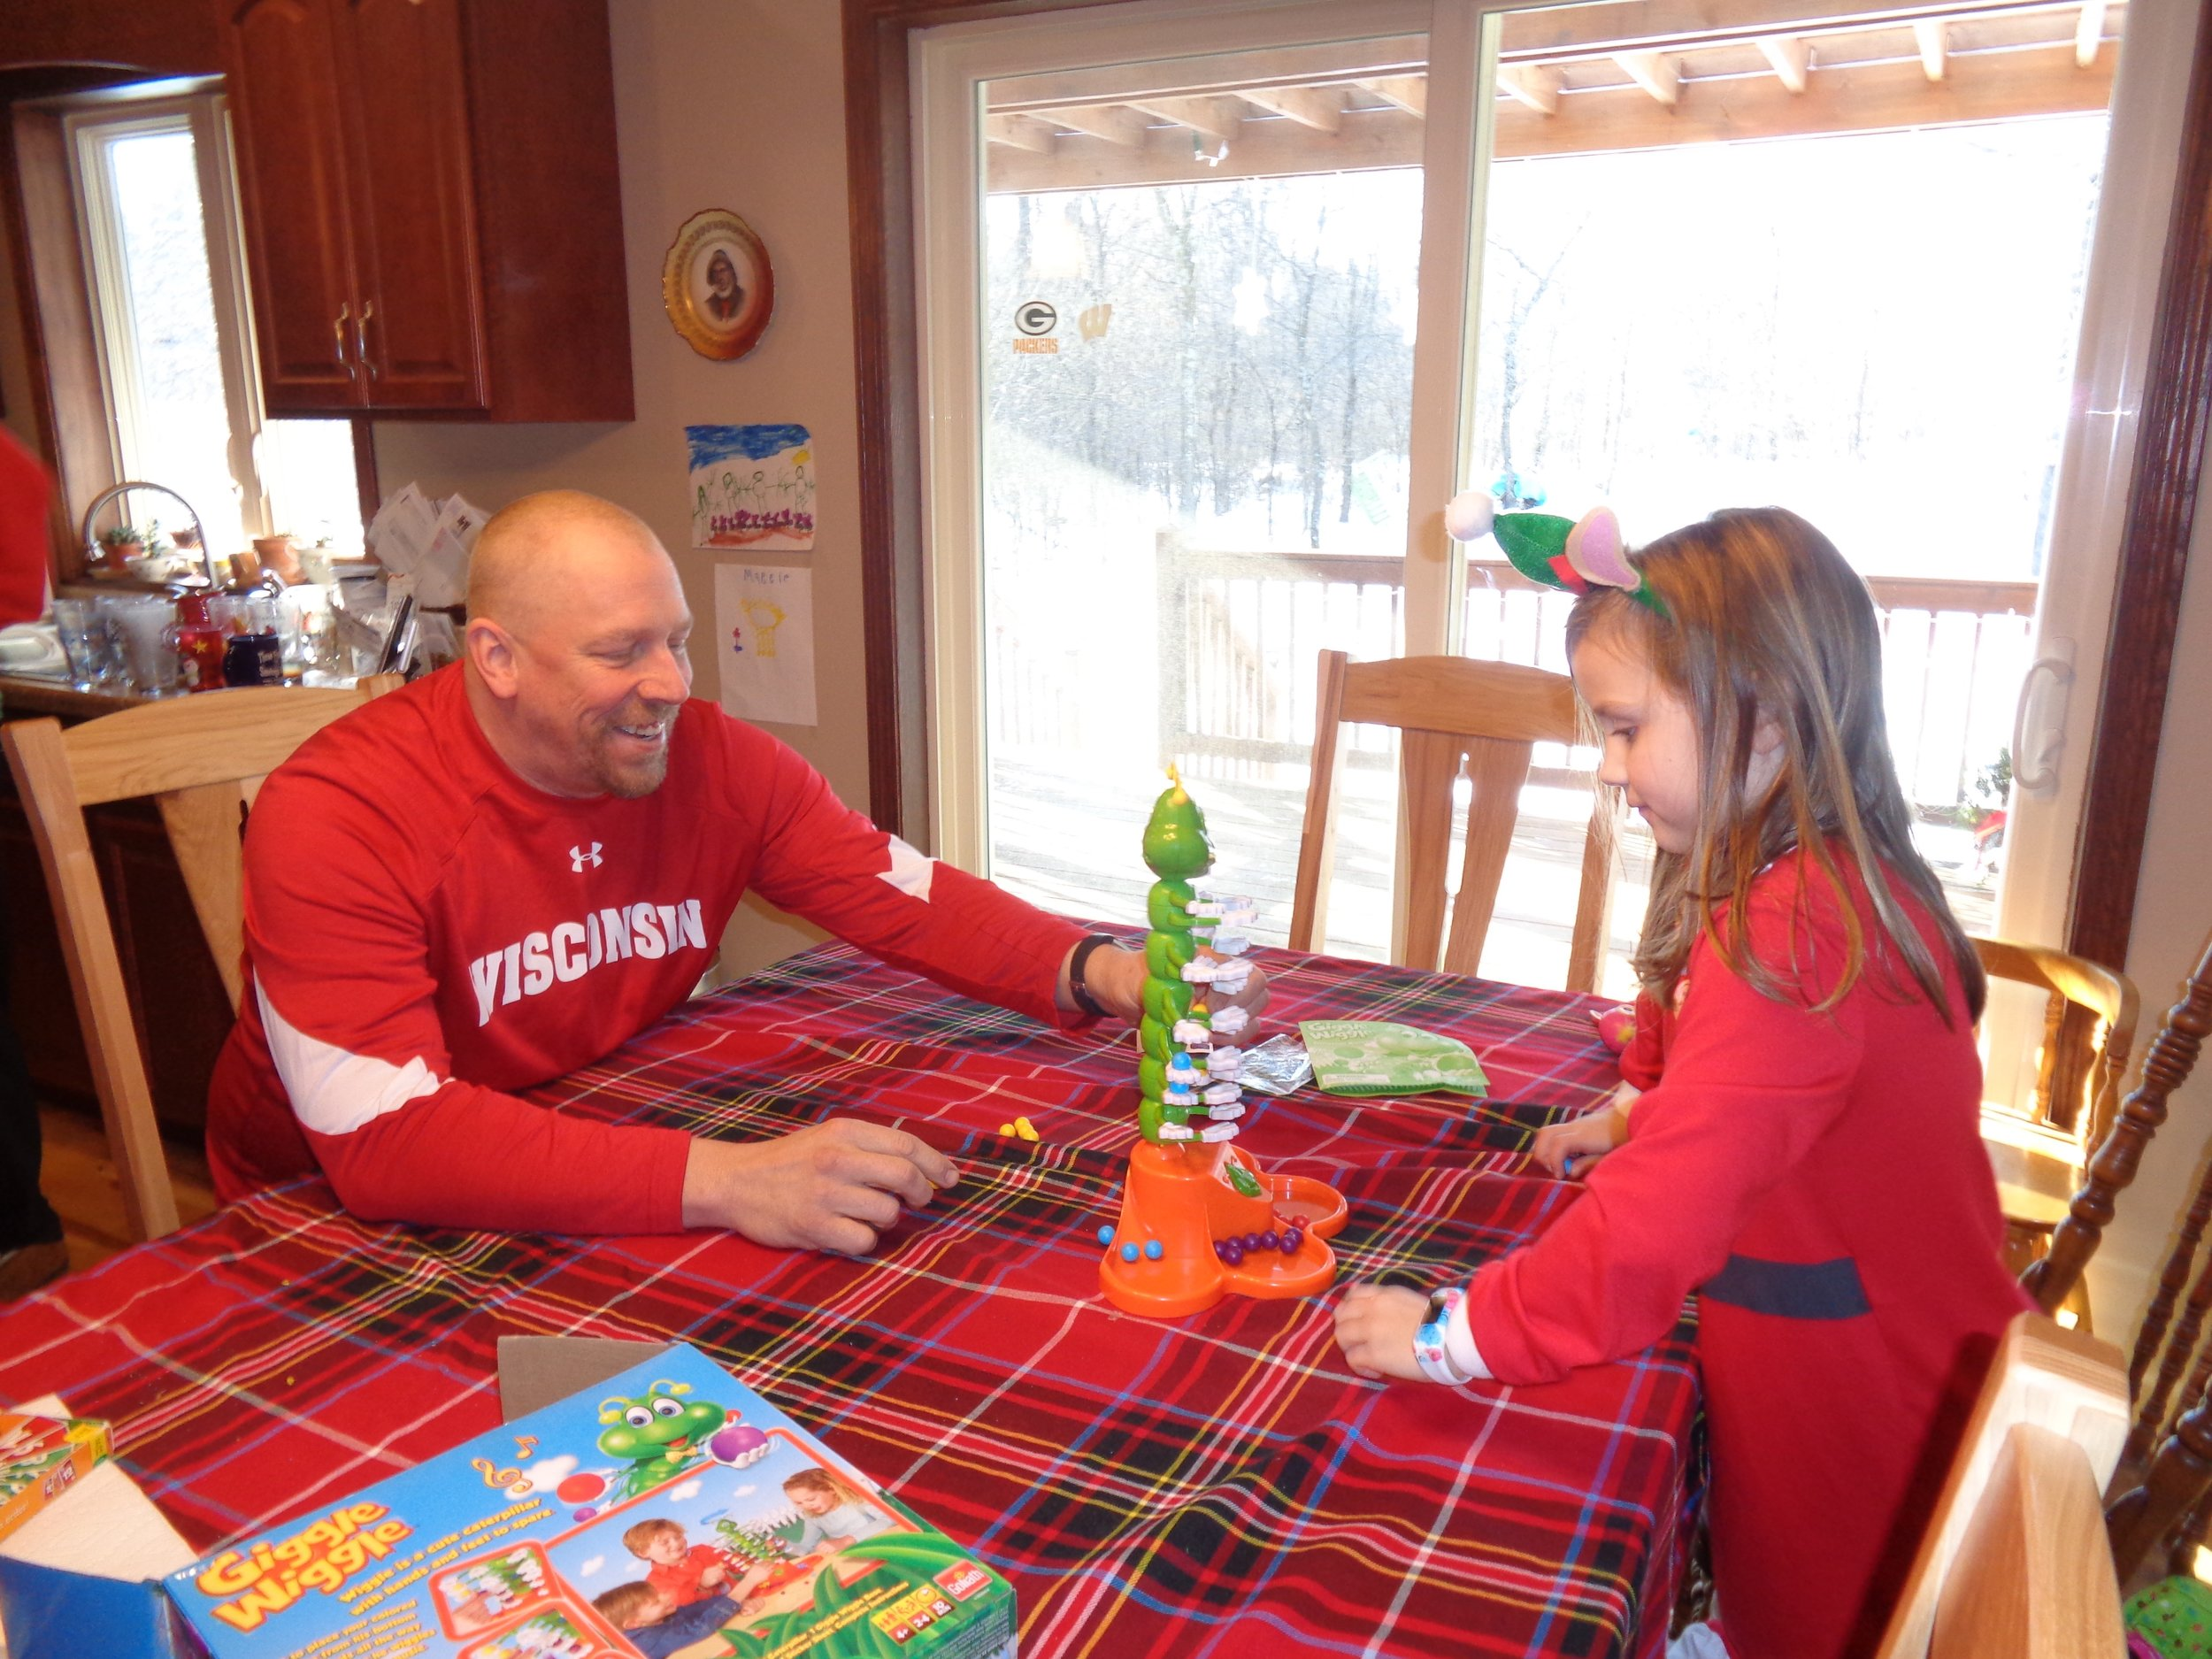 We love playing games with our niece